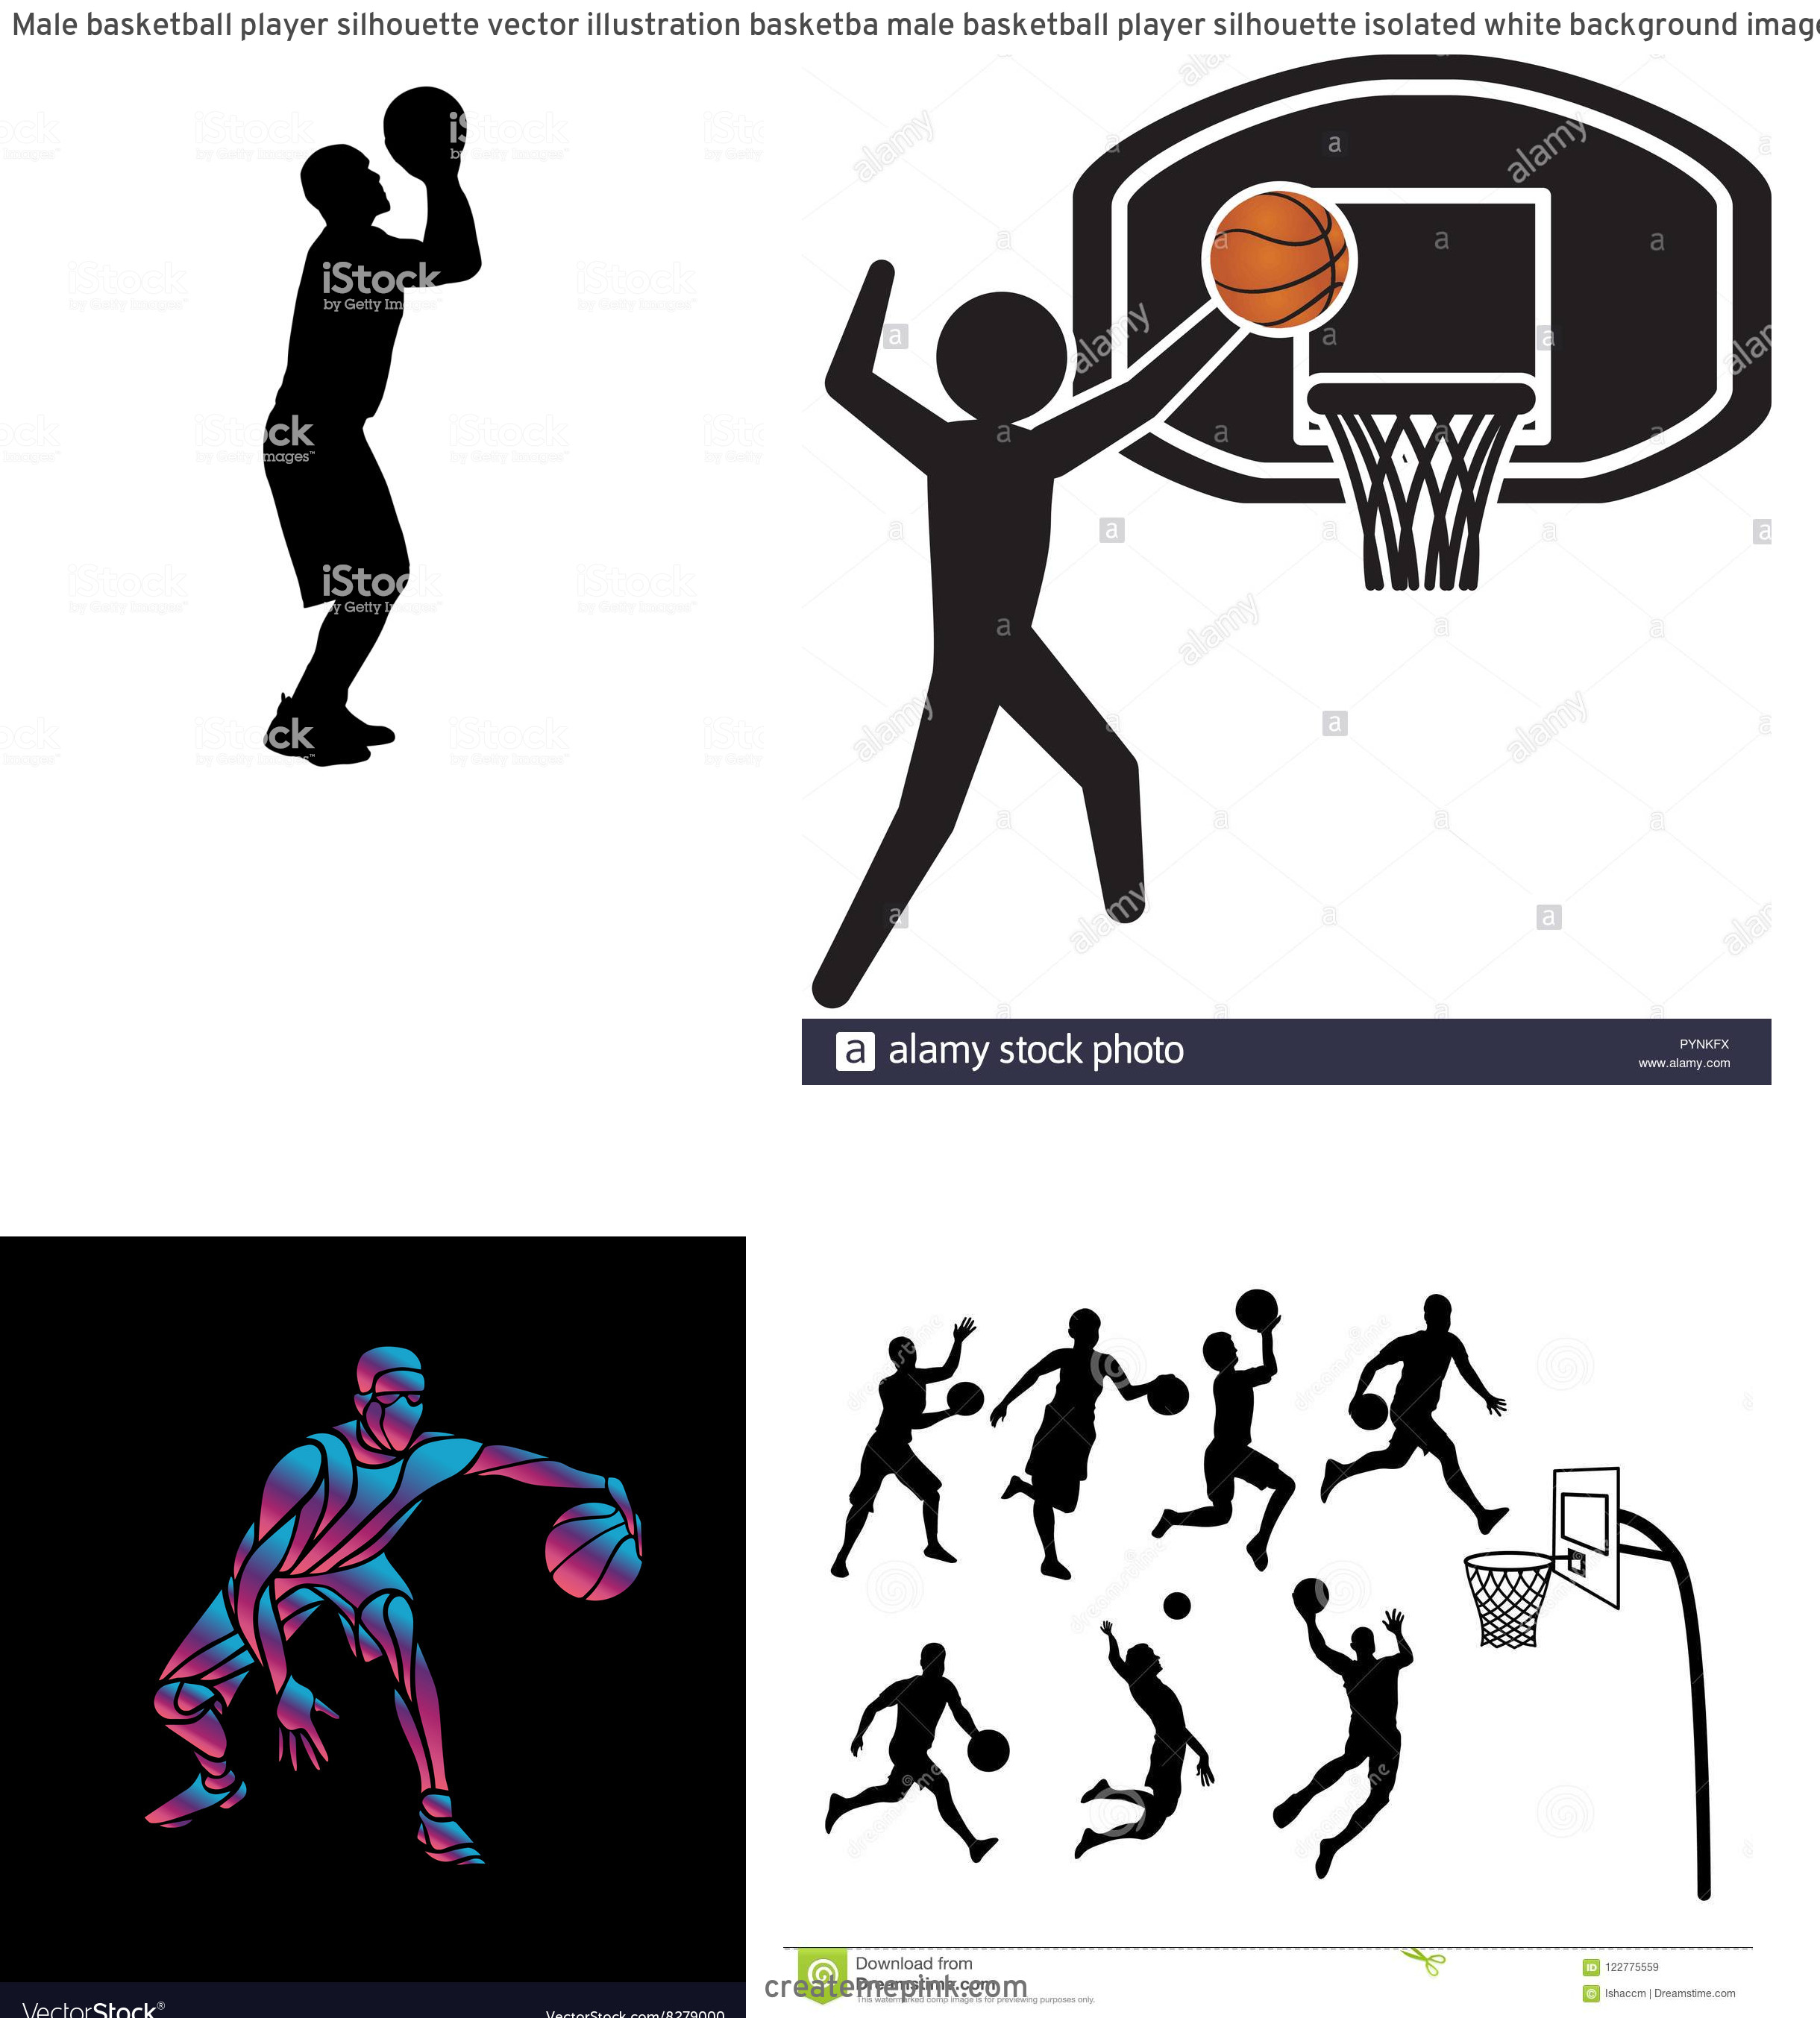 Basketball Player Silhouette Vector Illustration: Male Basketball Player Silhouette Vector Illustration Basketba Male Basketball Player Silhouette Isolated White Background Image